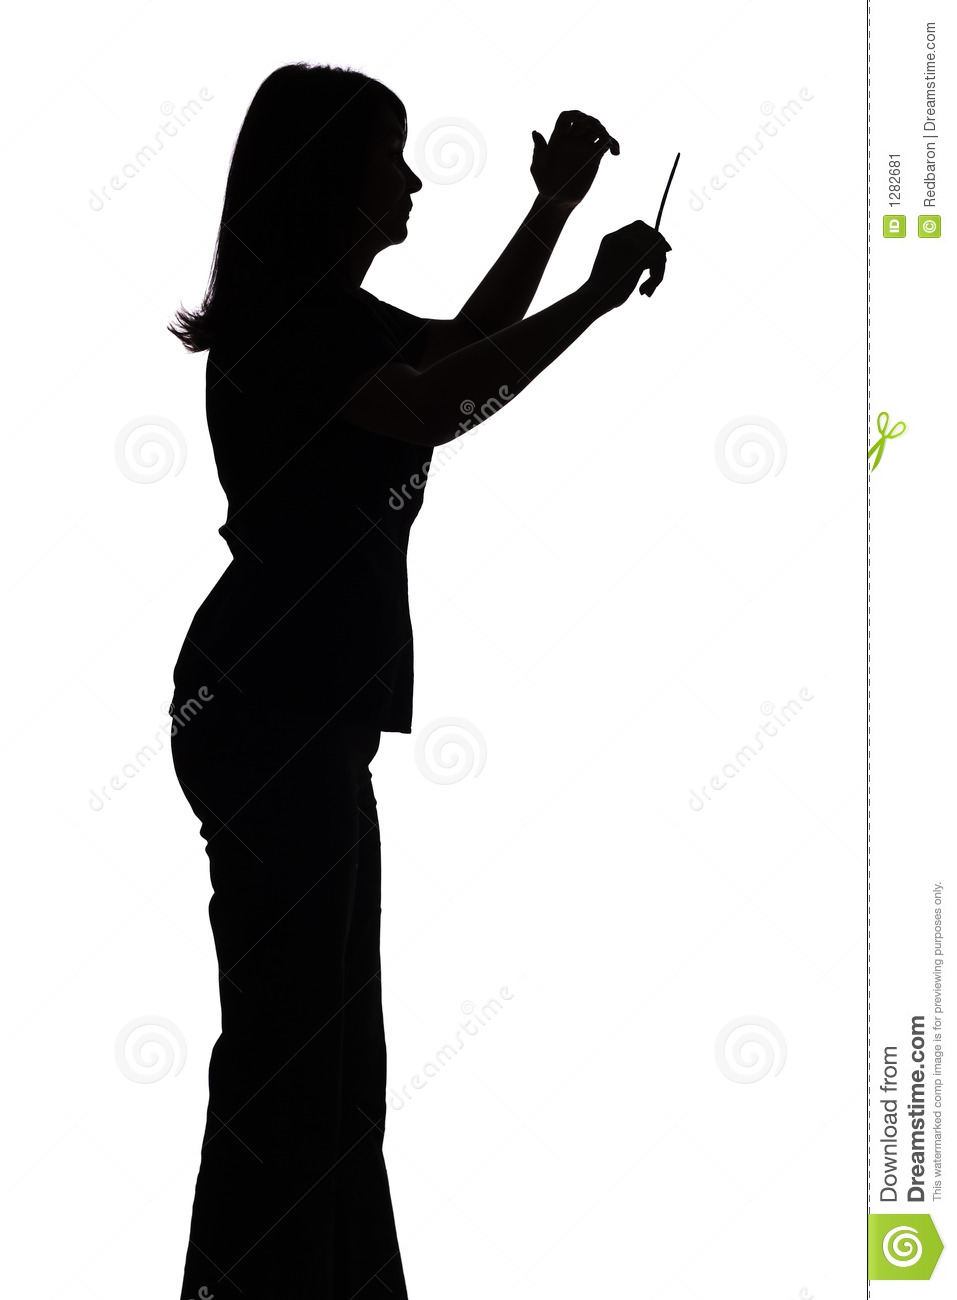 Pics For Gt Orchestra Conductor Silhouette